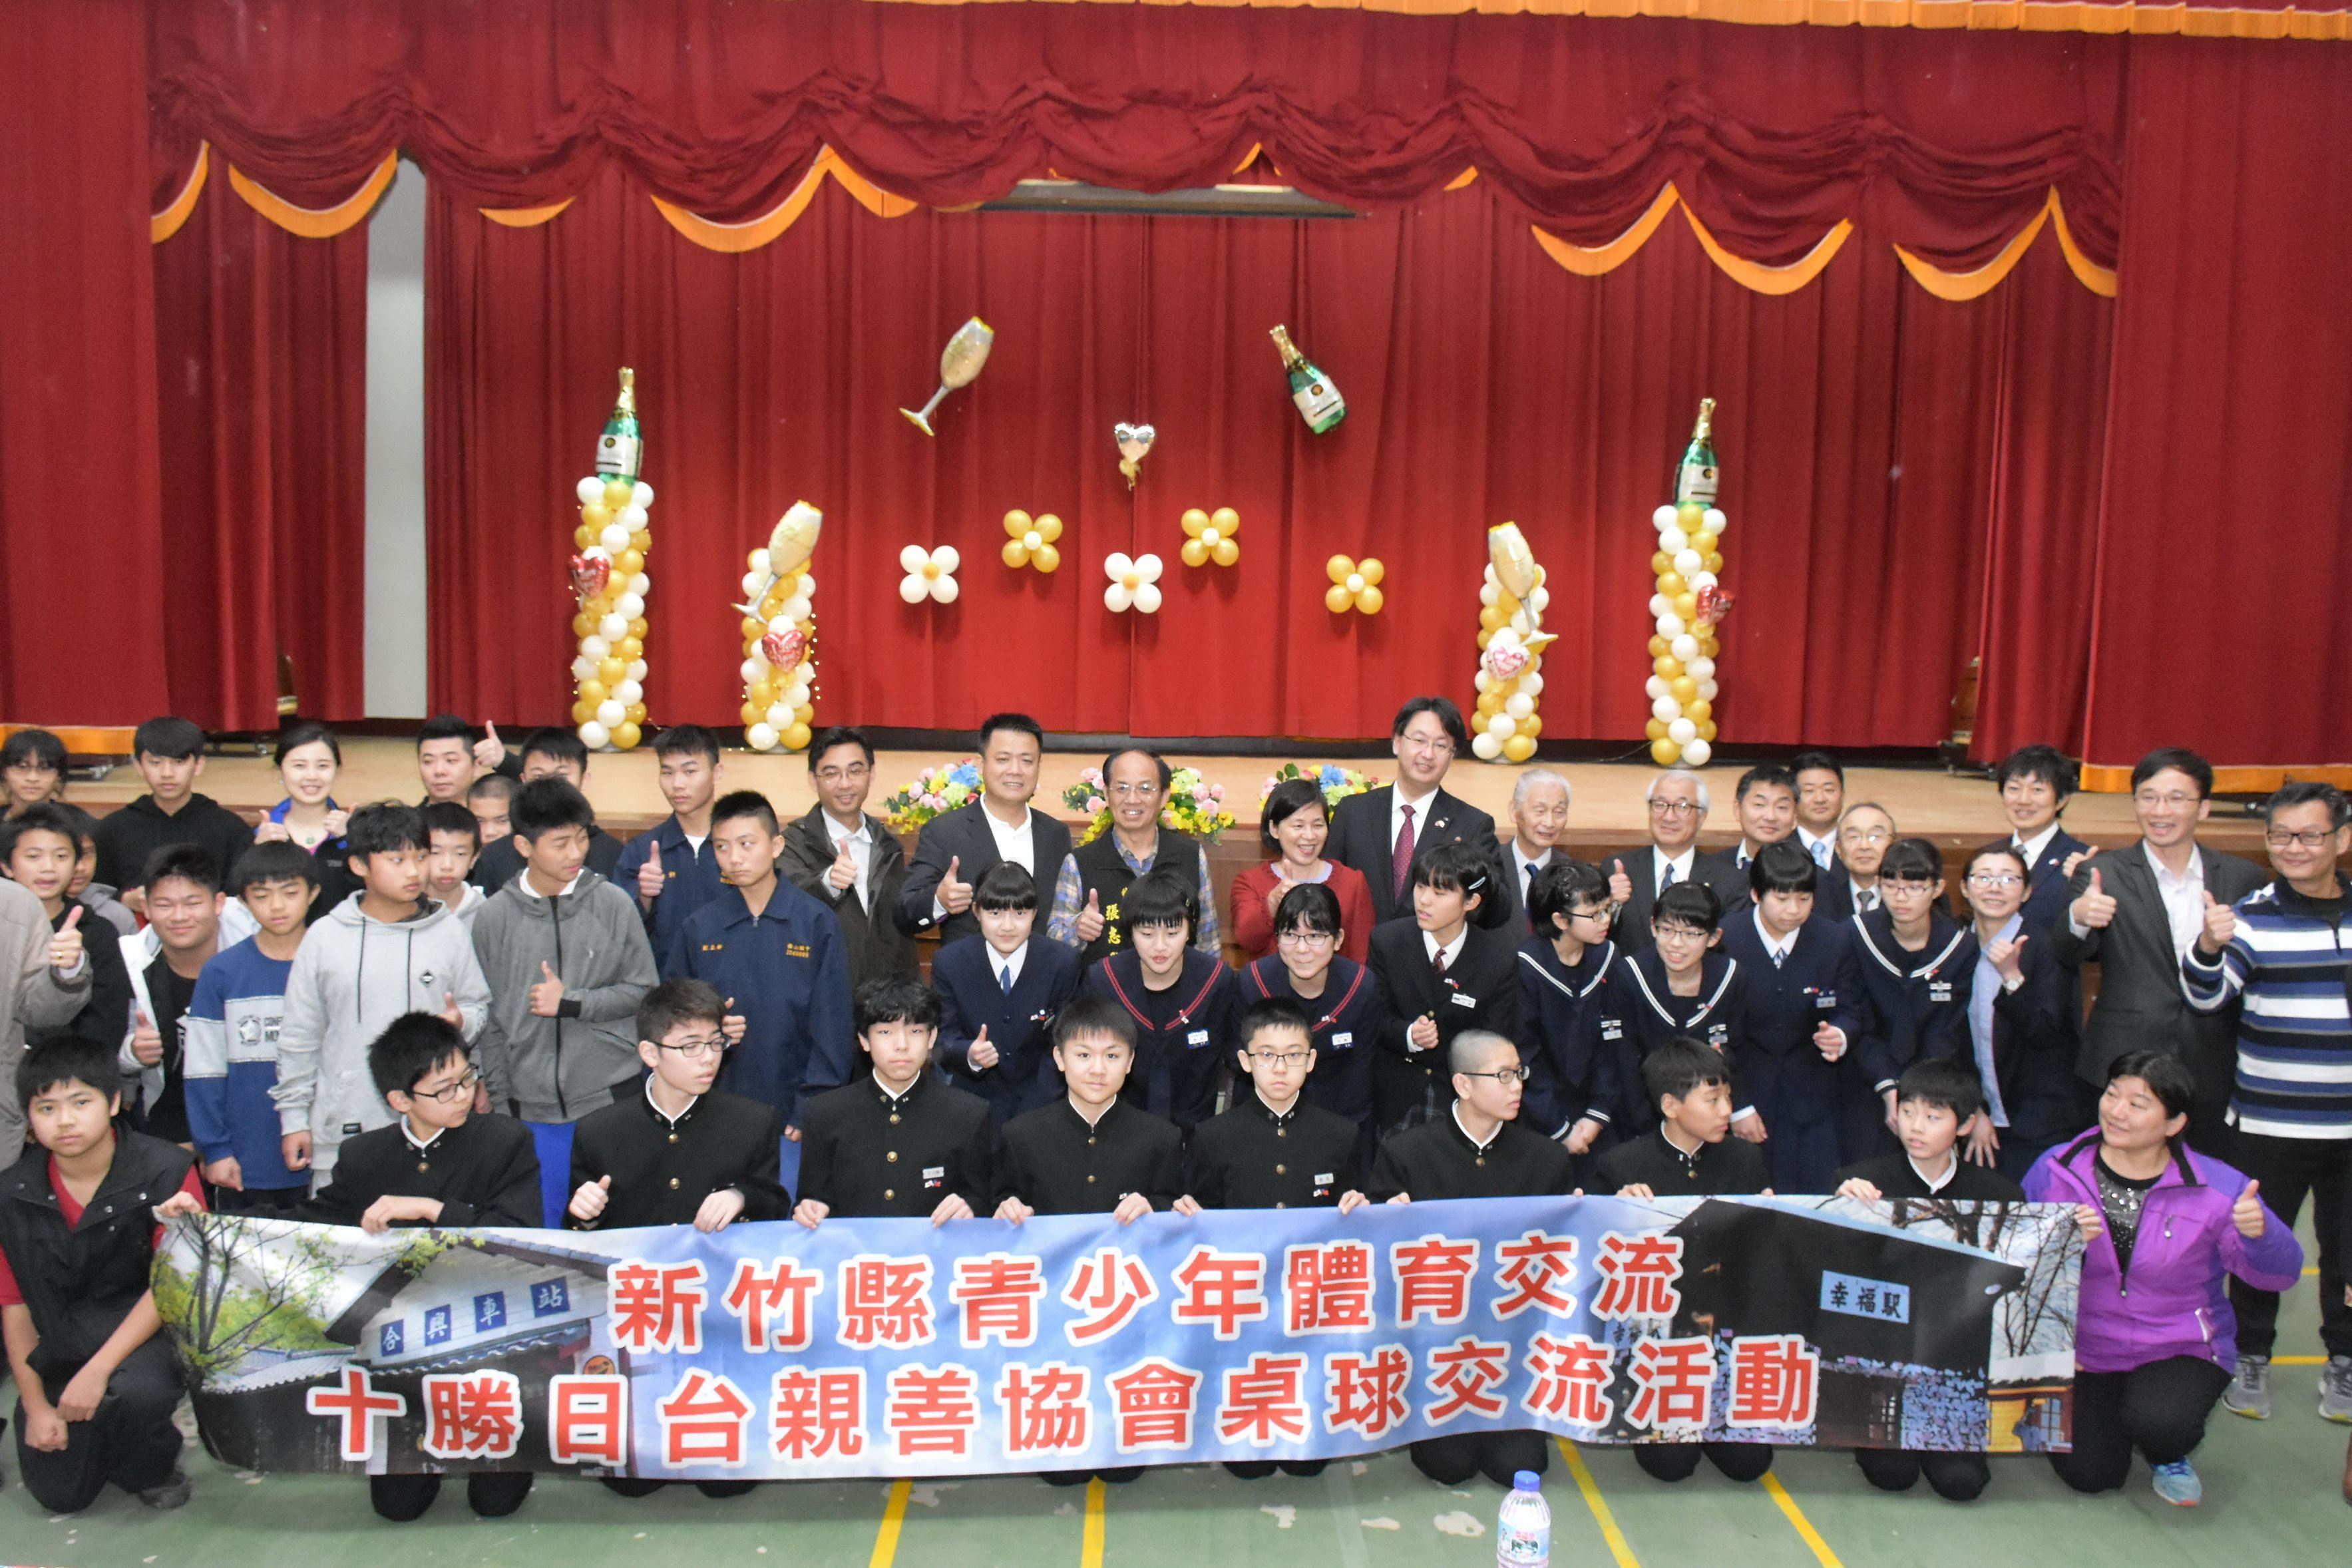 Friendship between Taiwanese and Japanese students heats up in 2019 Taiwan-Japan Table Tennis Exchange Games